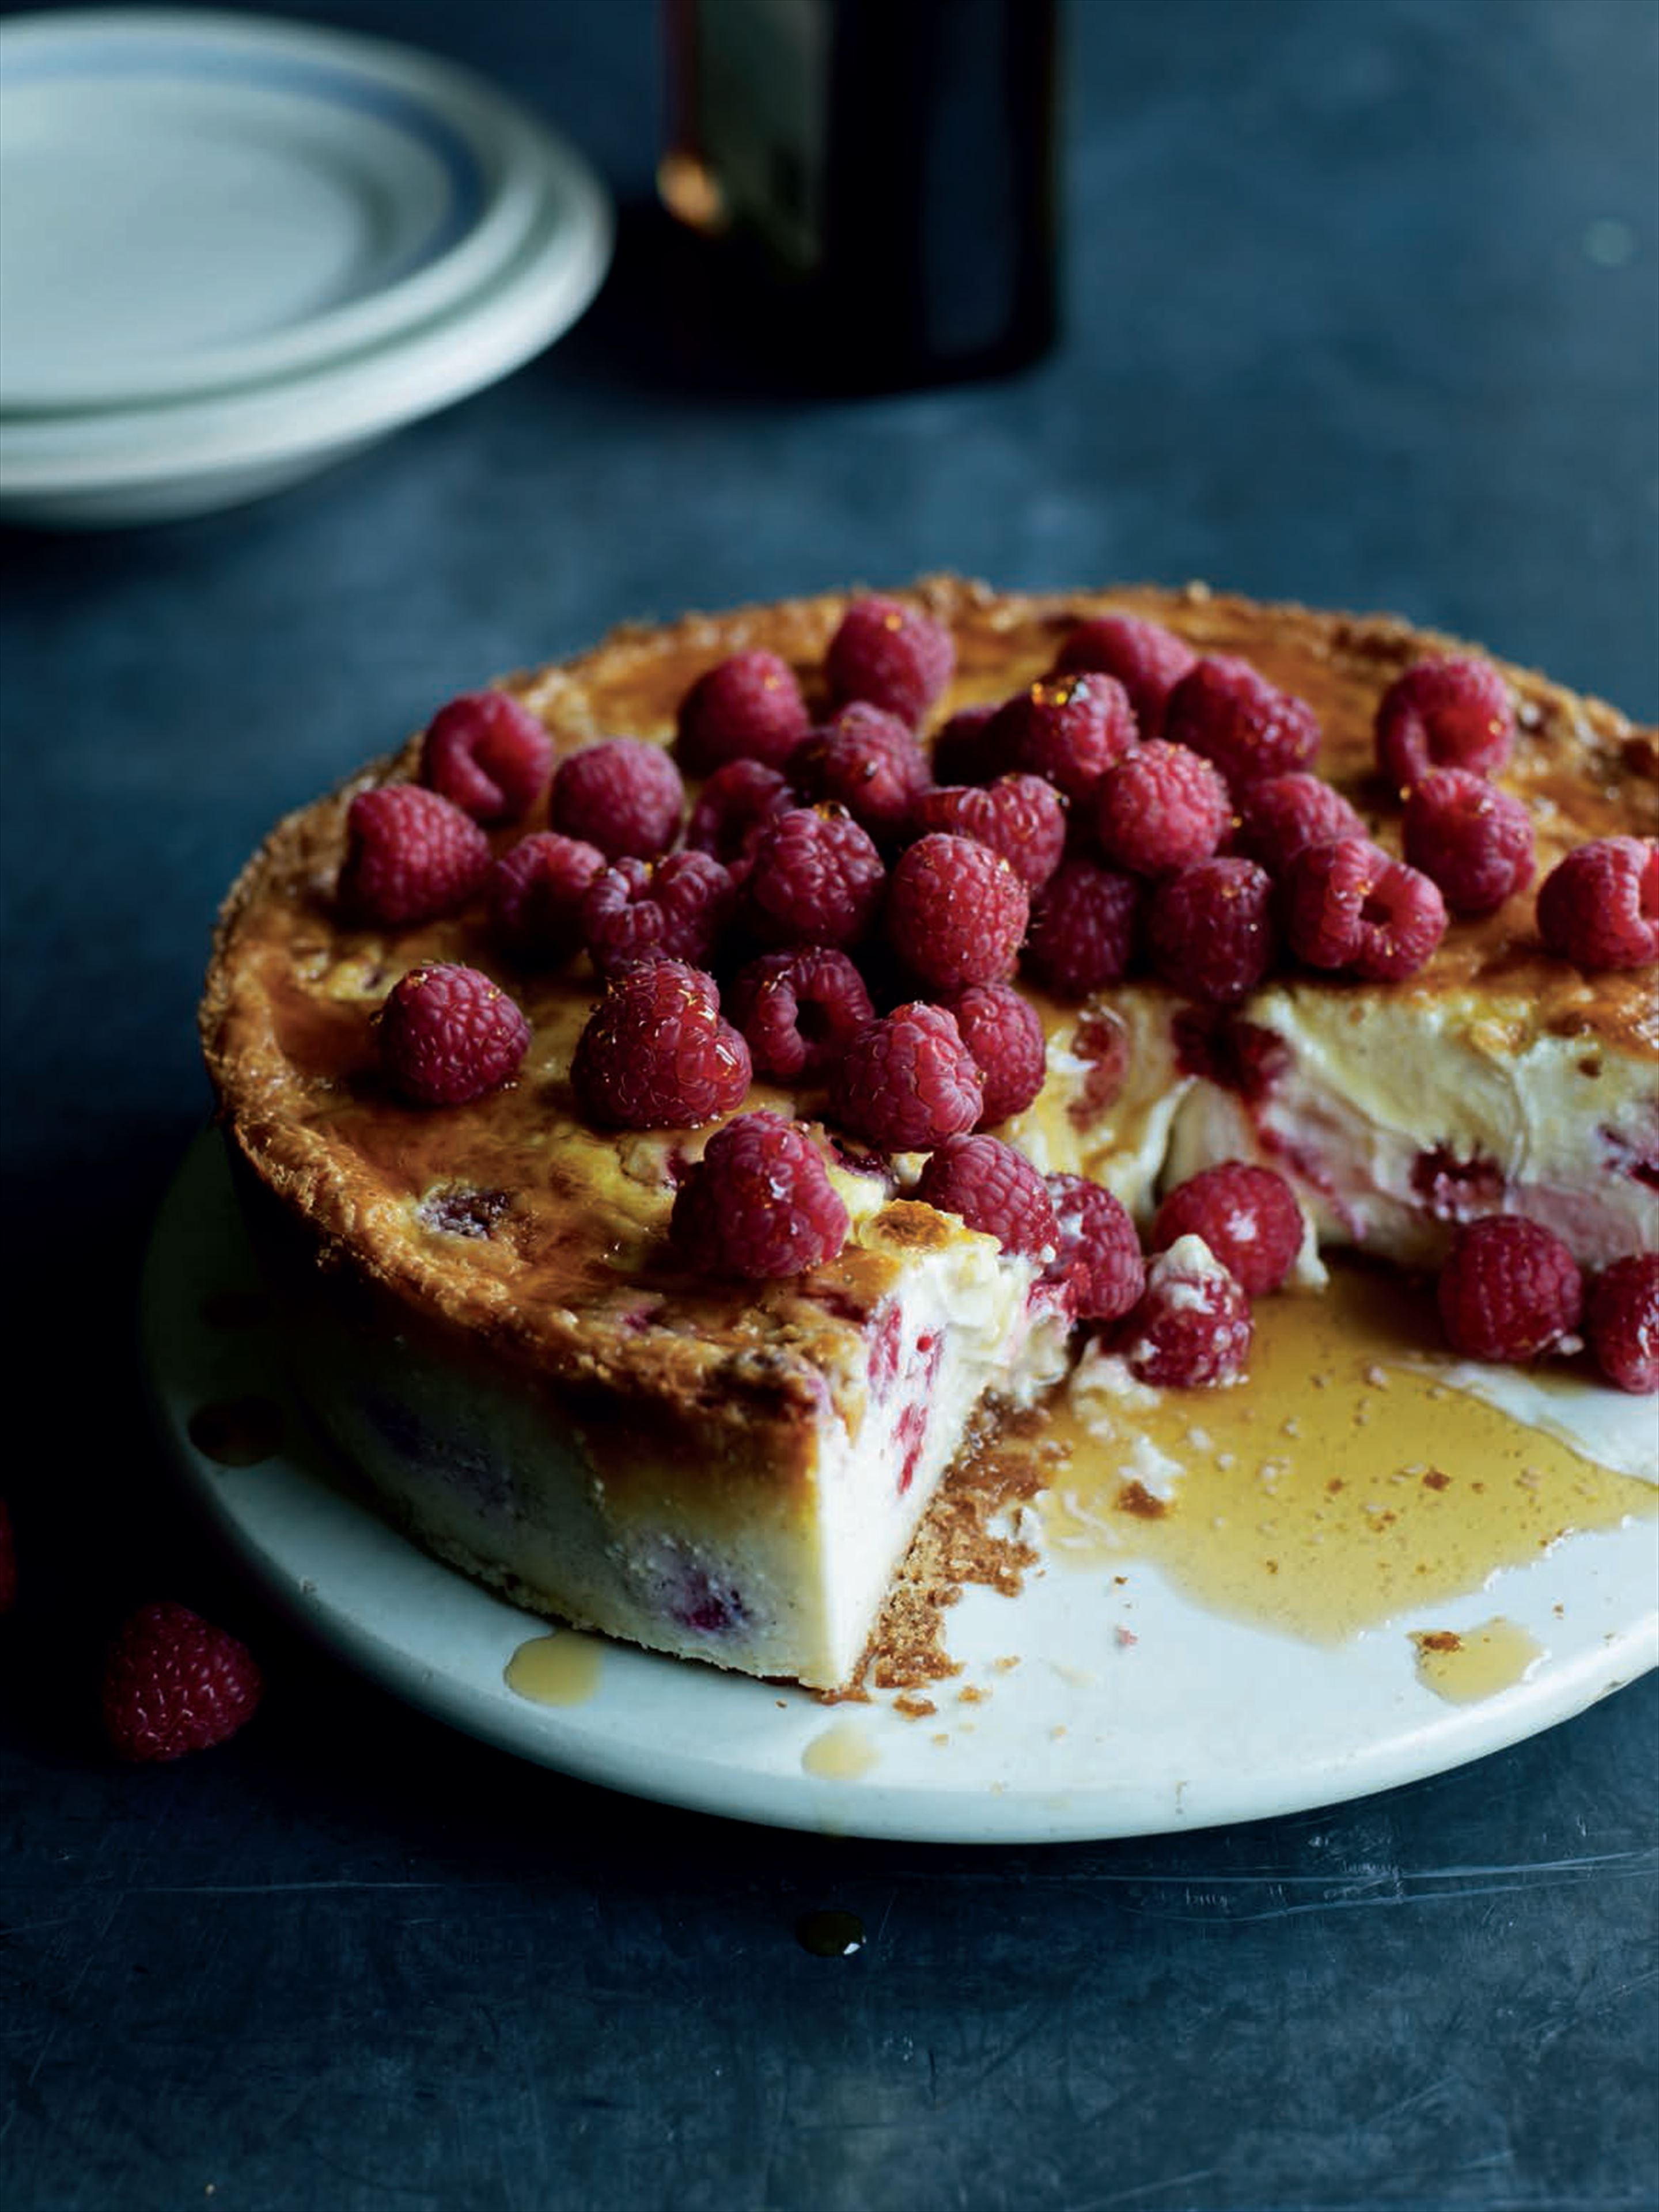 Baked New York raspberry cheesecake